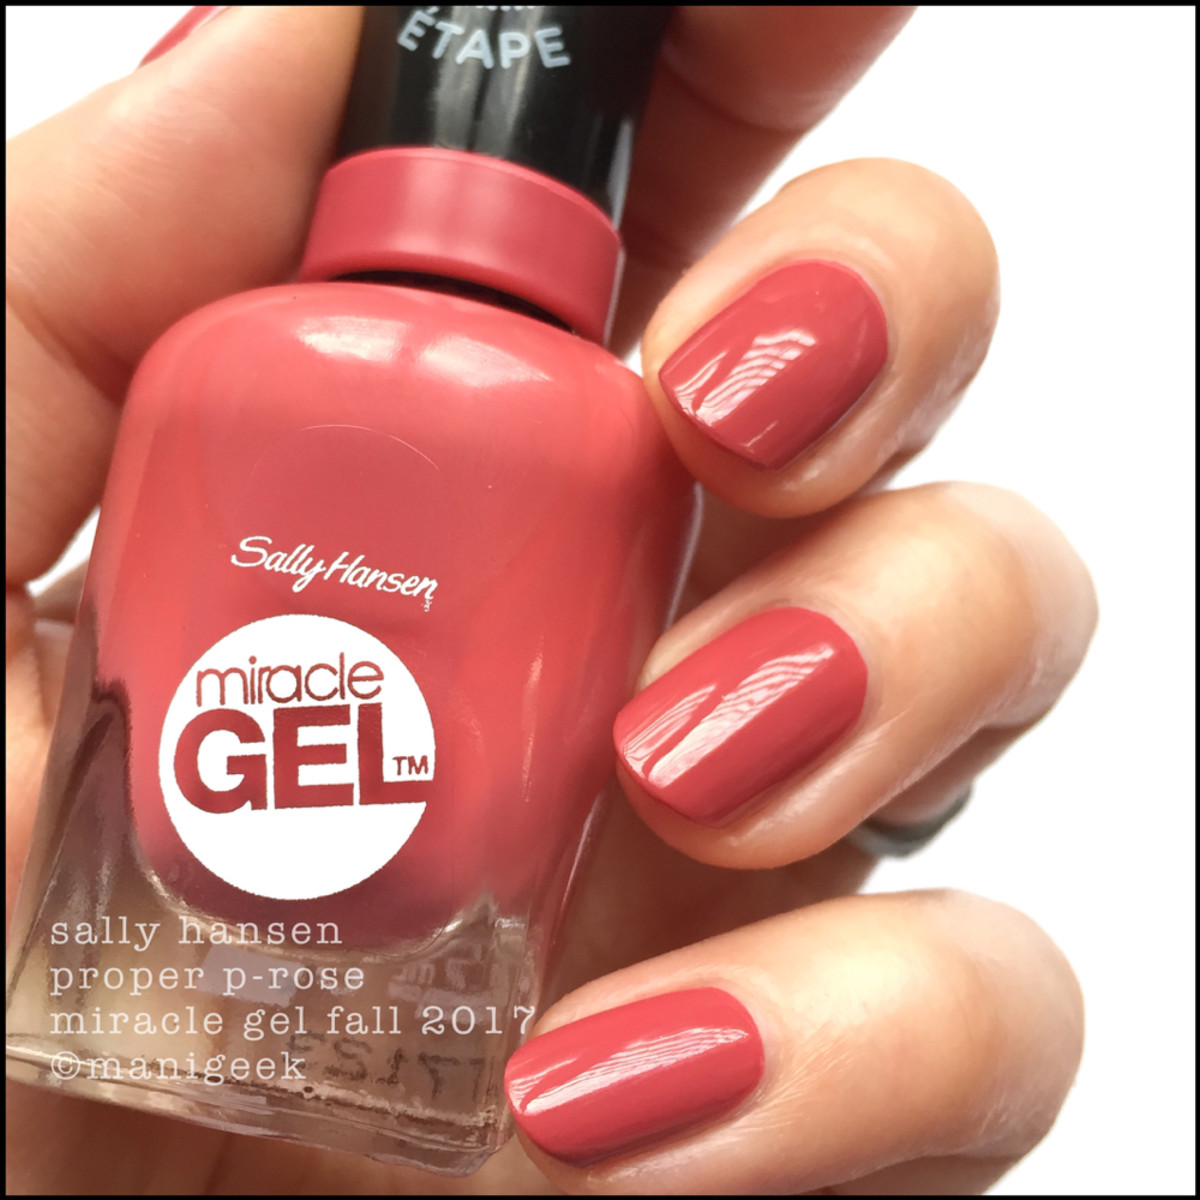 Sally Hansen Proper Prose Miracle Gel _ Manigeek 1000 Days of Untrieds Week 3